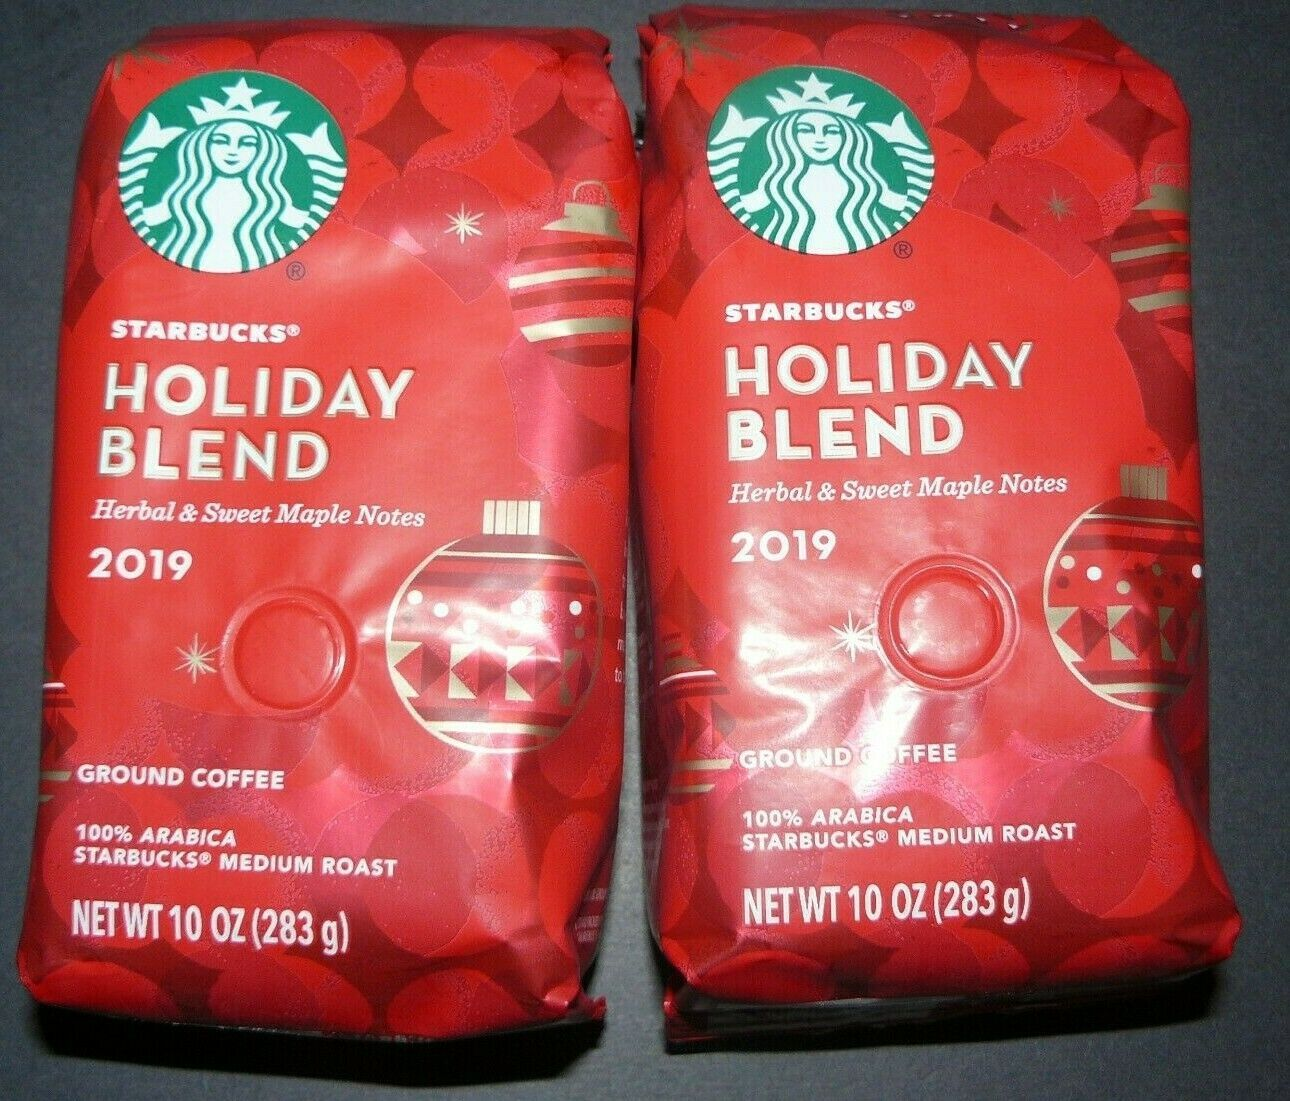 4 bags of starbucks holiday blend 2019 10 oz ground